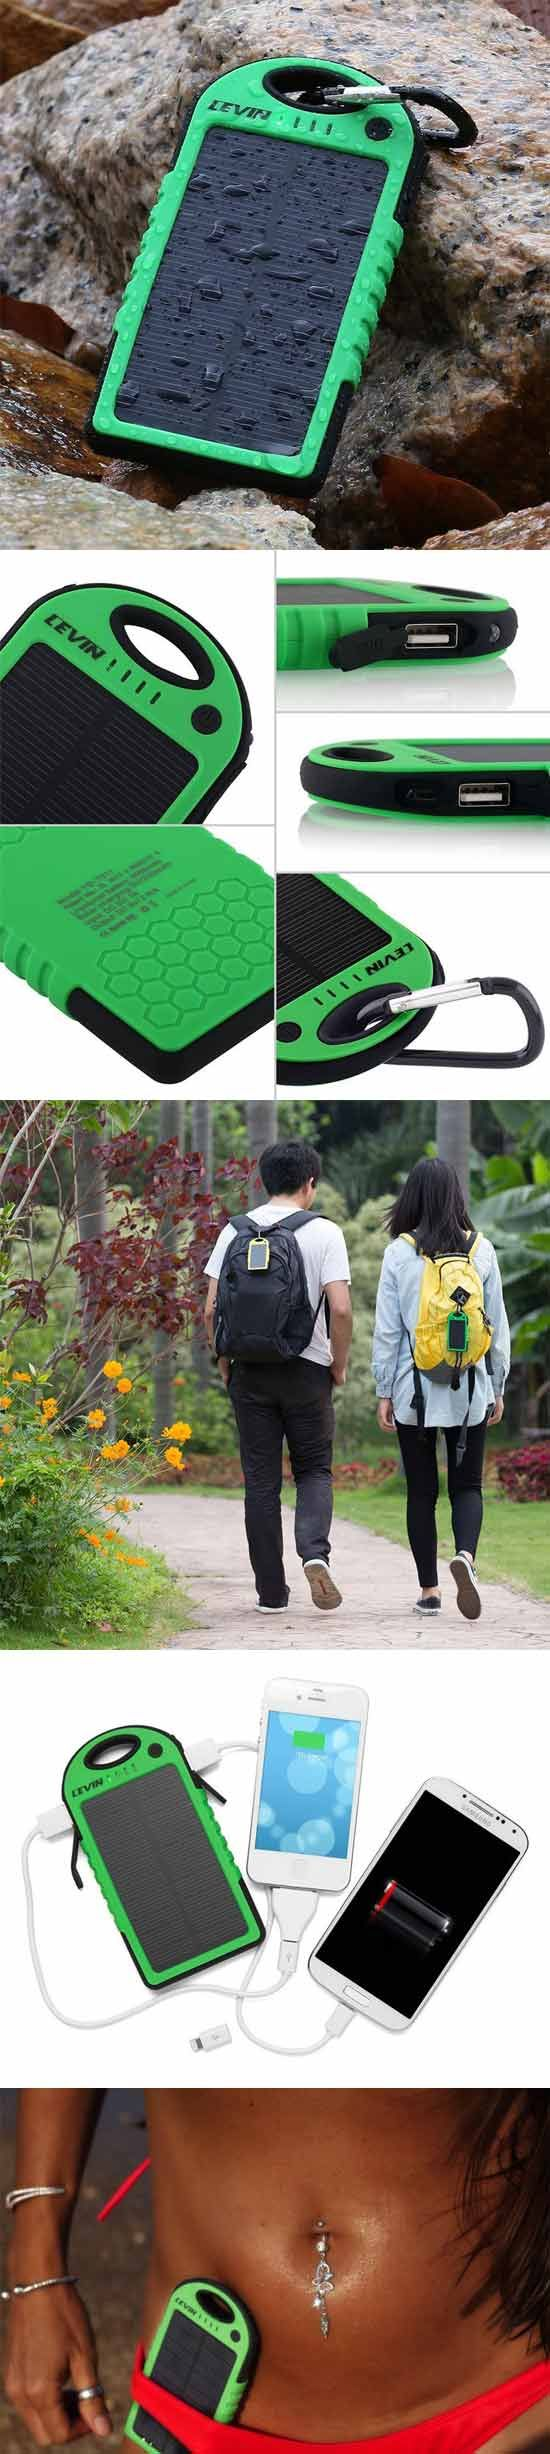 Levin Solstar – Solar Panel Charger – 5000mAh::  Aside from this small, lightweight solar cell being water-resistant and Dirt/Shockproof, it also has two built in USB ports. That means simultaneous charging of two separate devices at a time. Being that it has USB ports rather than cables, it is pretty much universally compatible with anything you can plug into it provided you use the existing charge cable that works on your device.